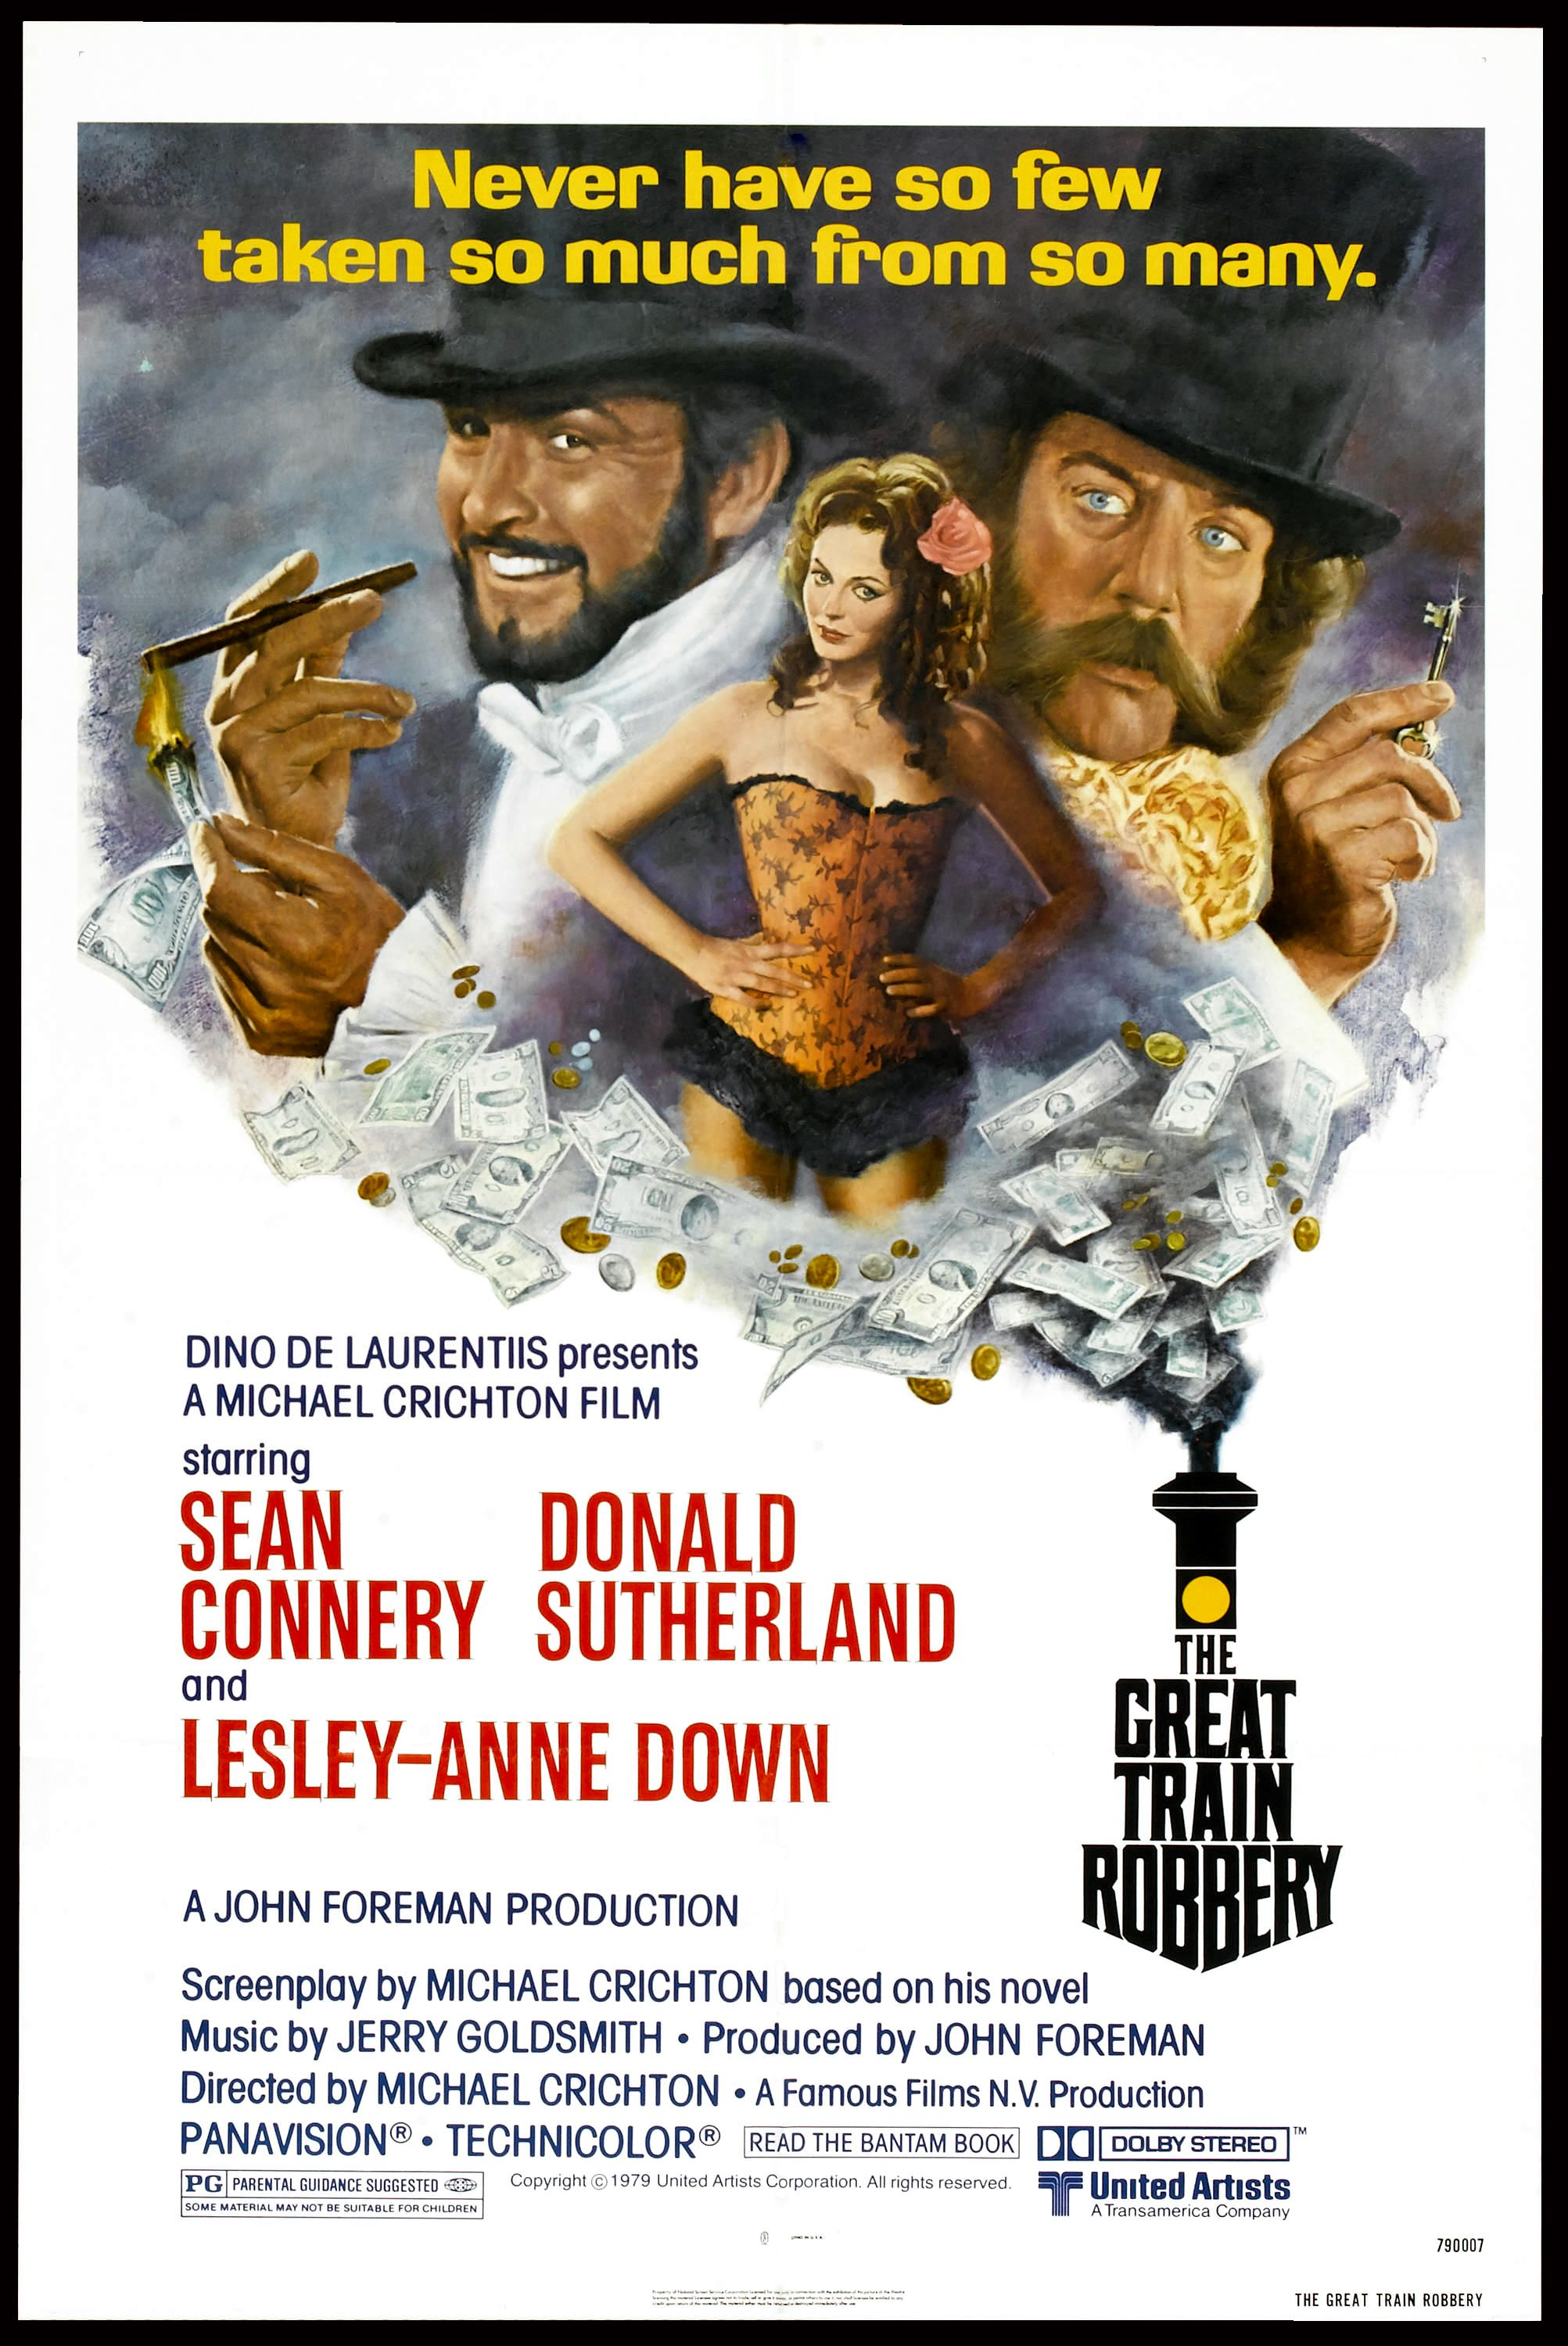 The Great Train Robbery (1978) poster (Restoration performed by Darren  Harrison)